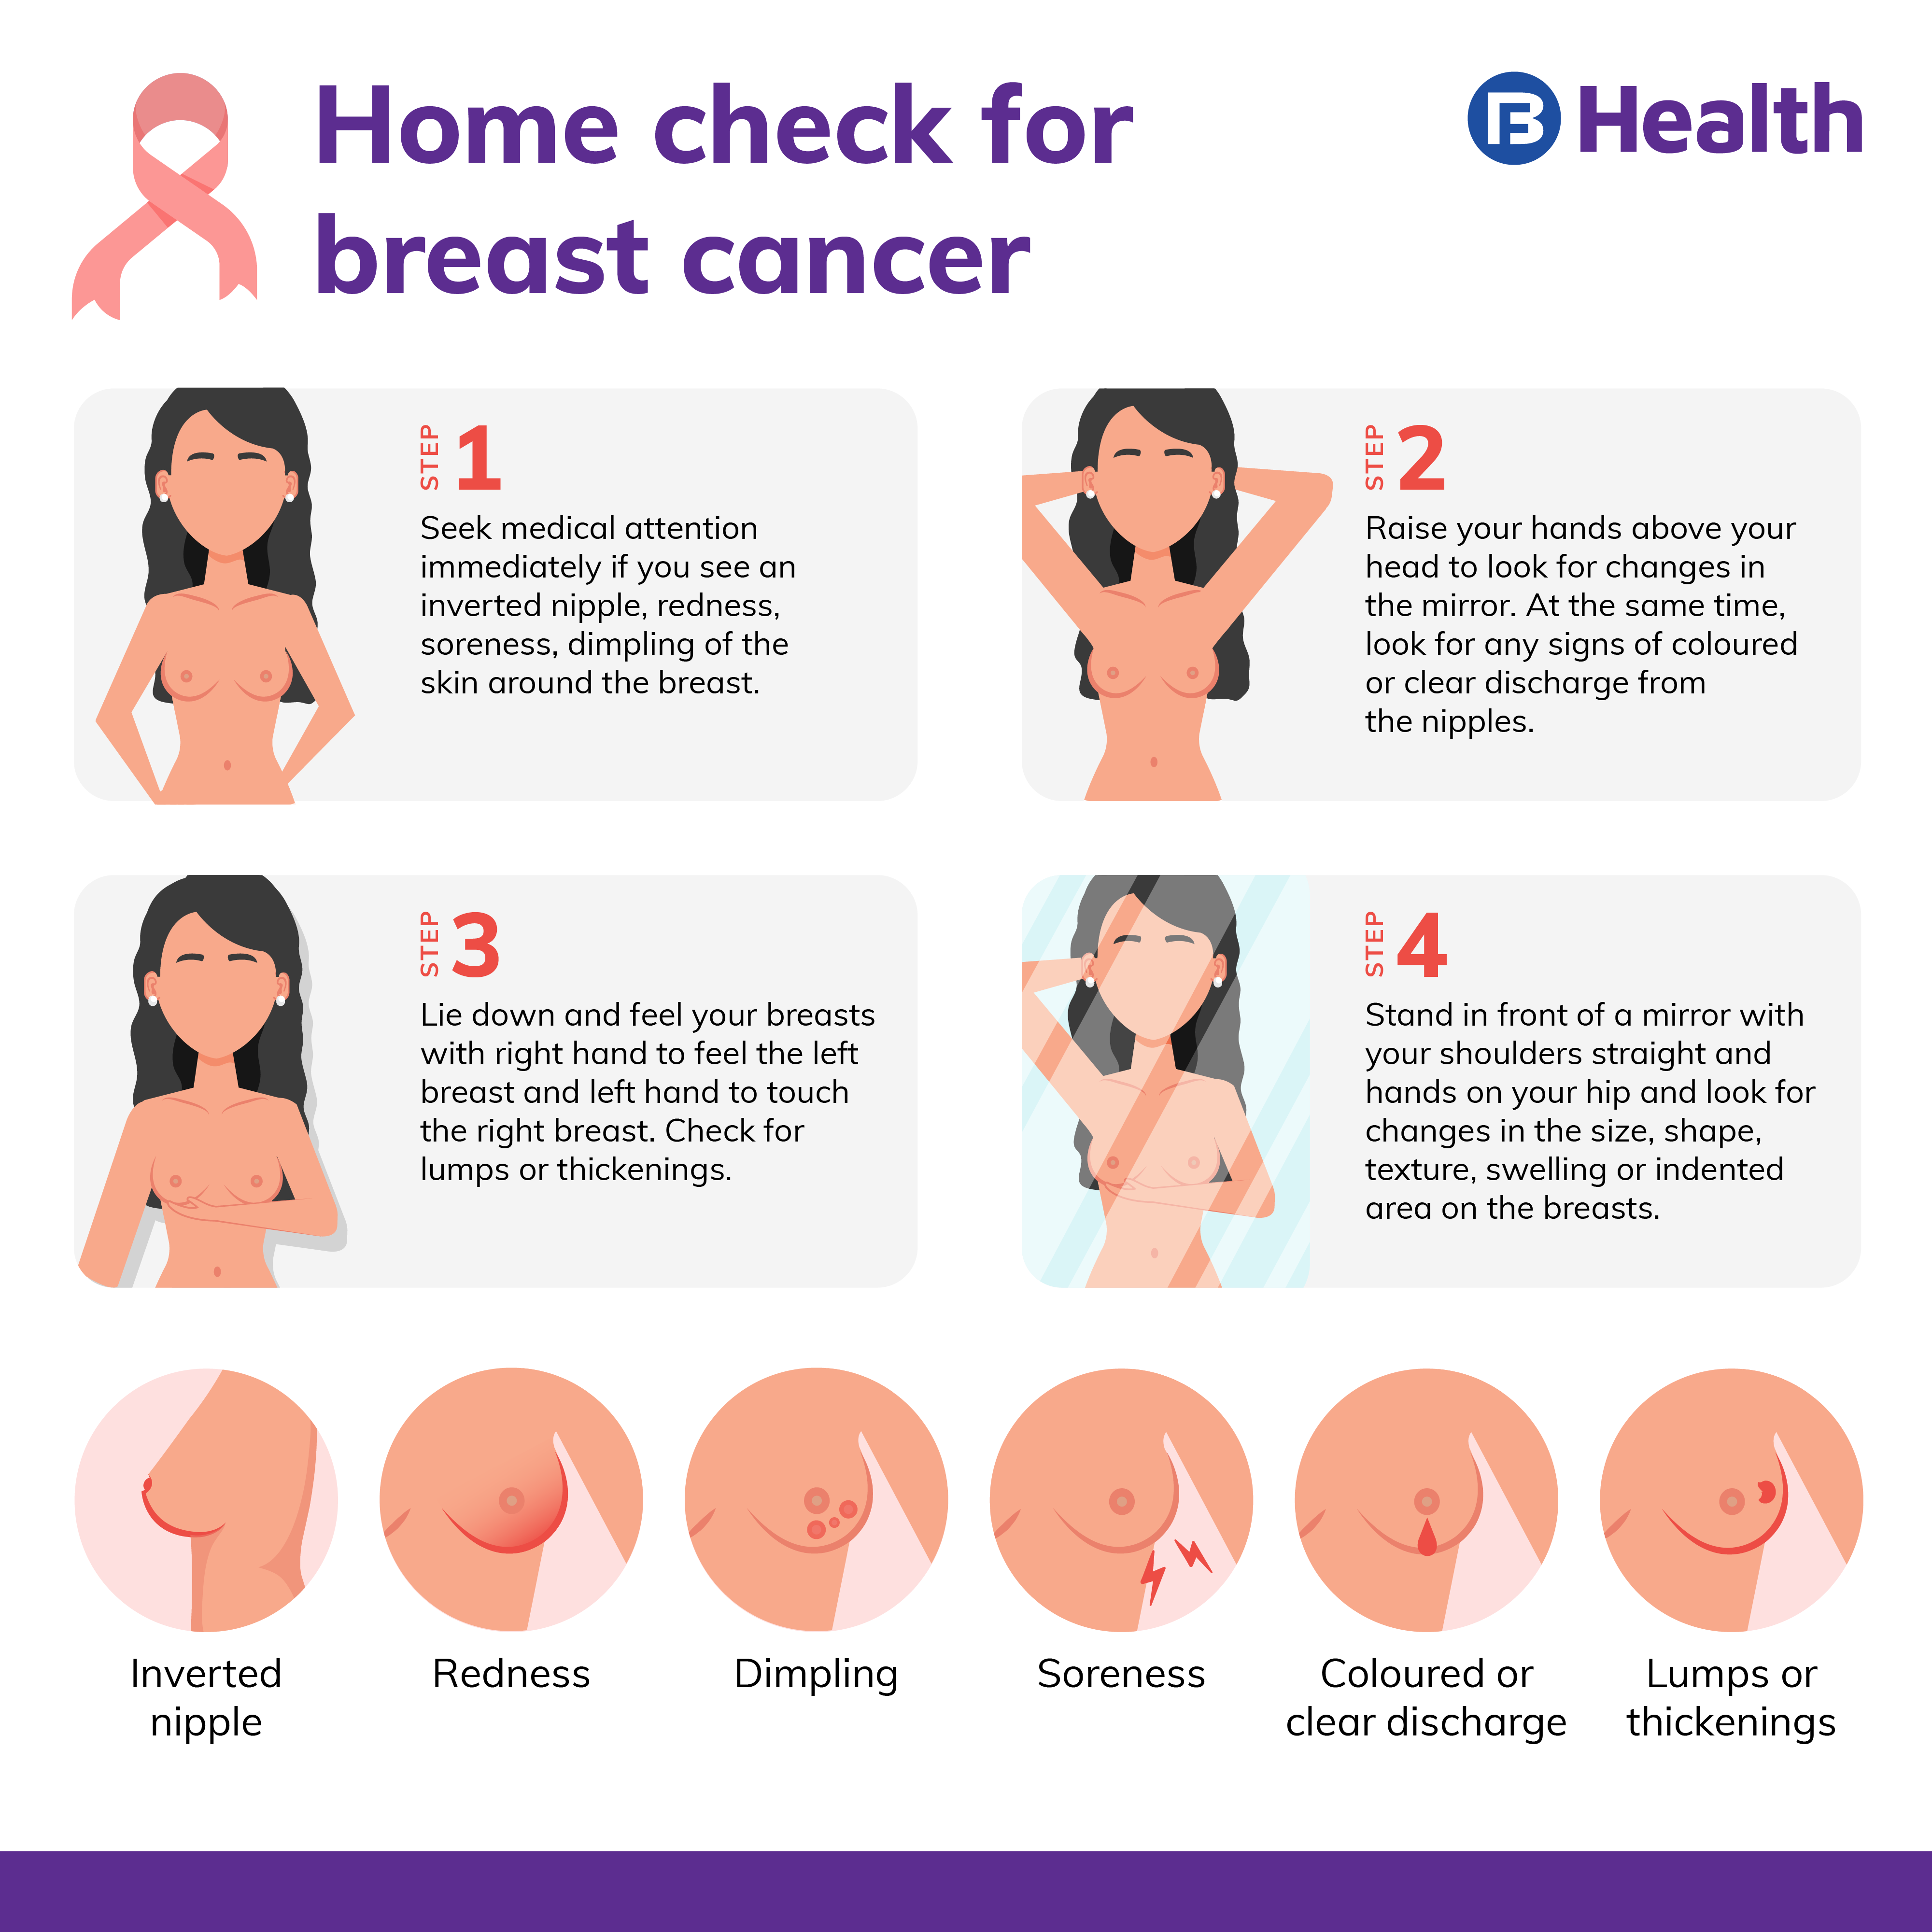 check breast cancer at home